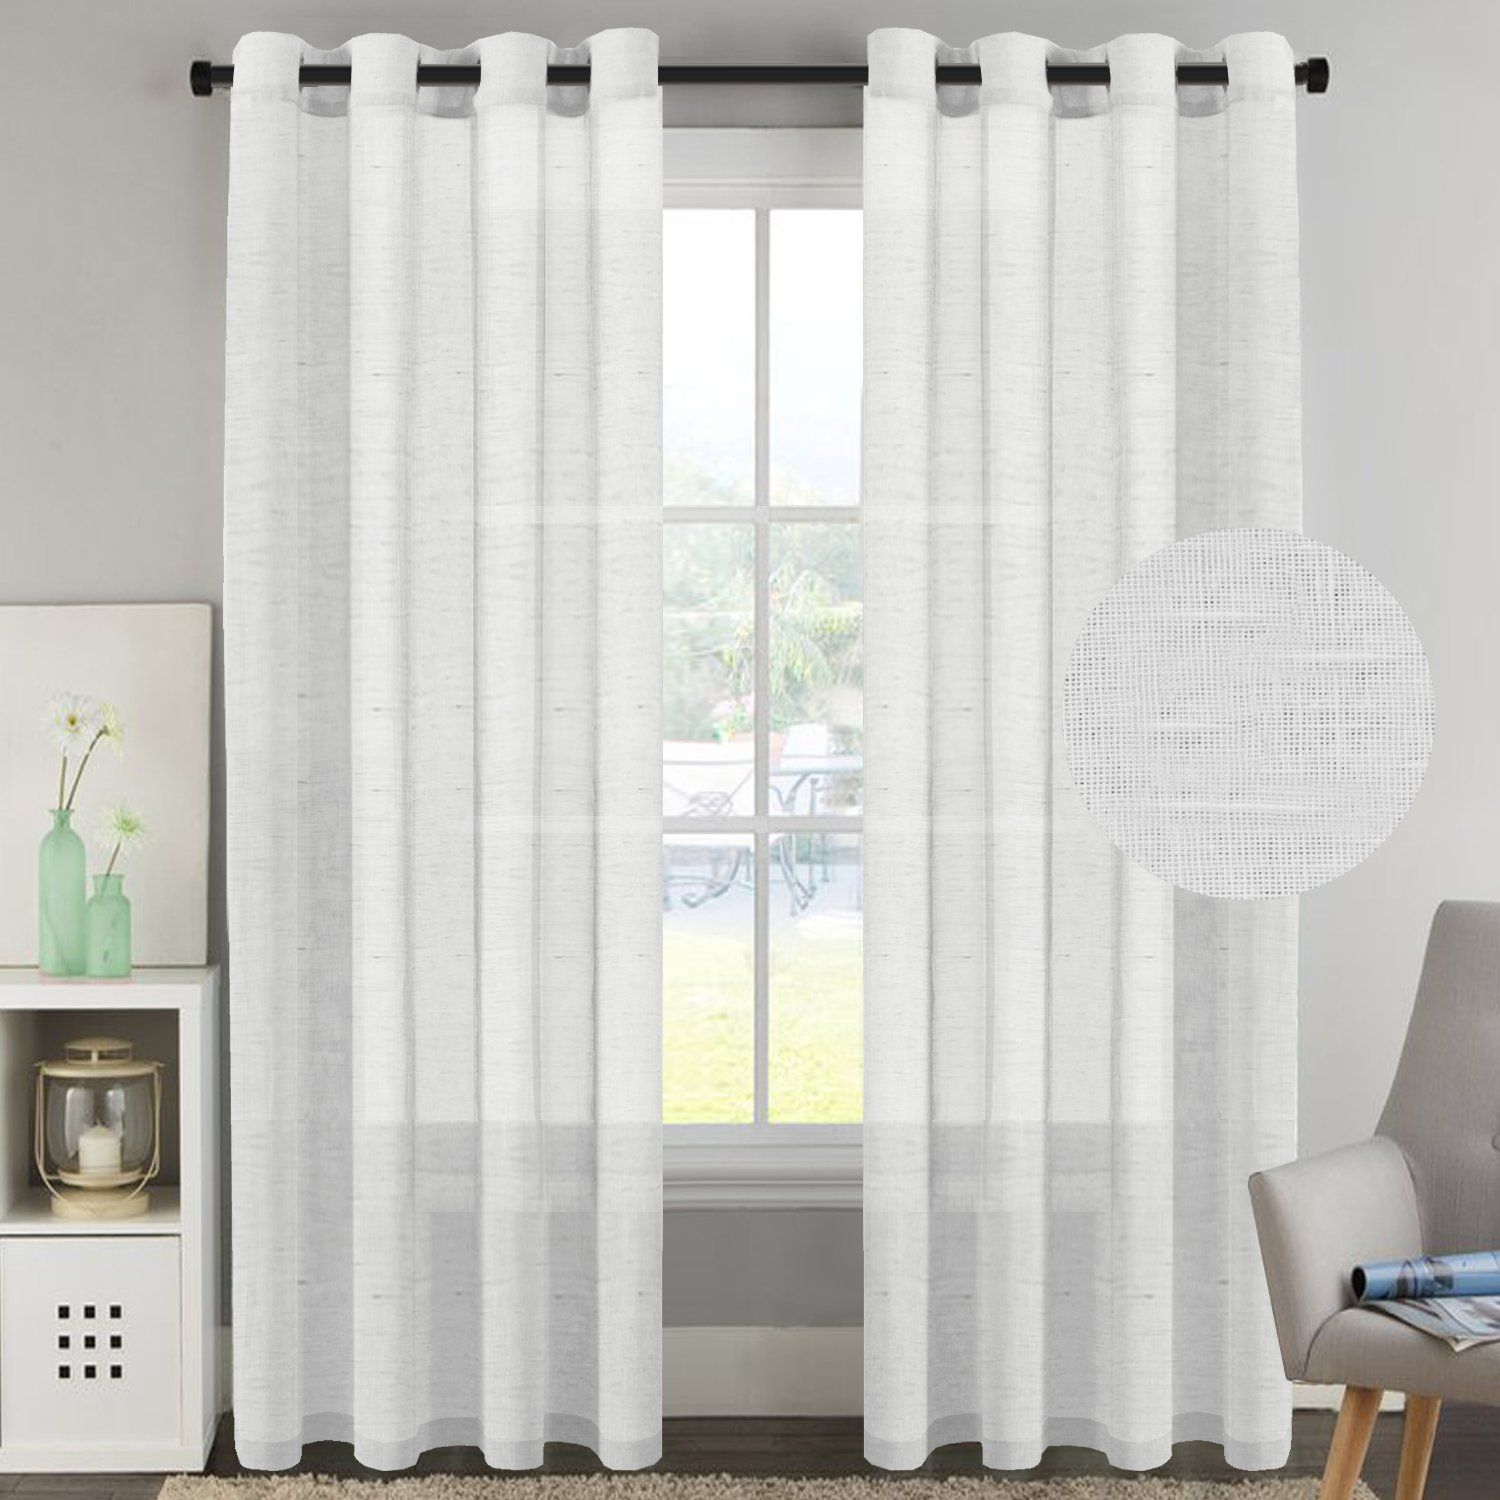 H.Versailtex Window Treaments Panels Open Weave White - Natural Linen Poly Blended Sheer Curtains